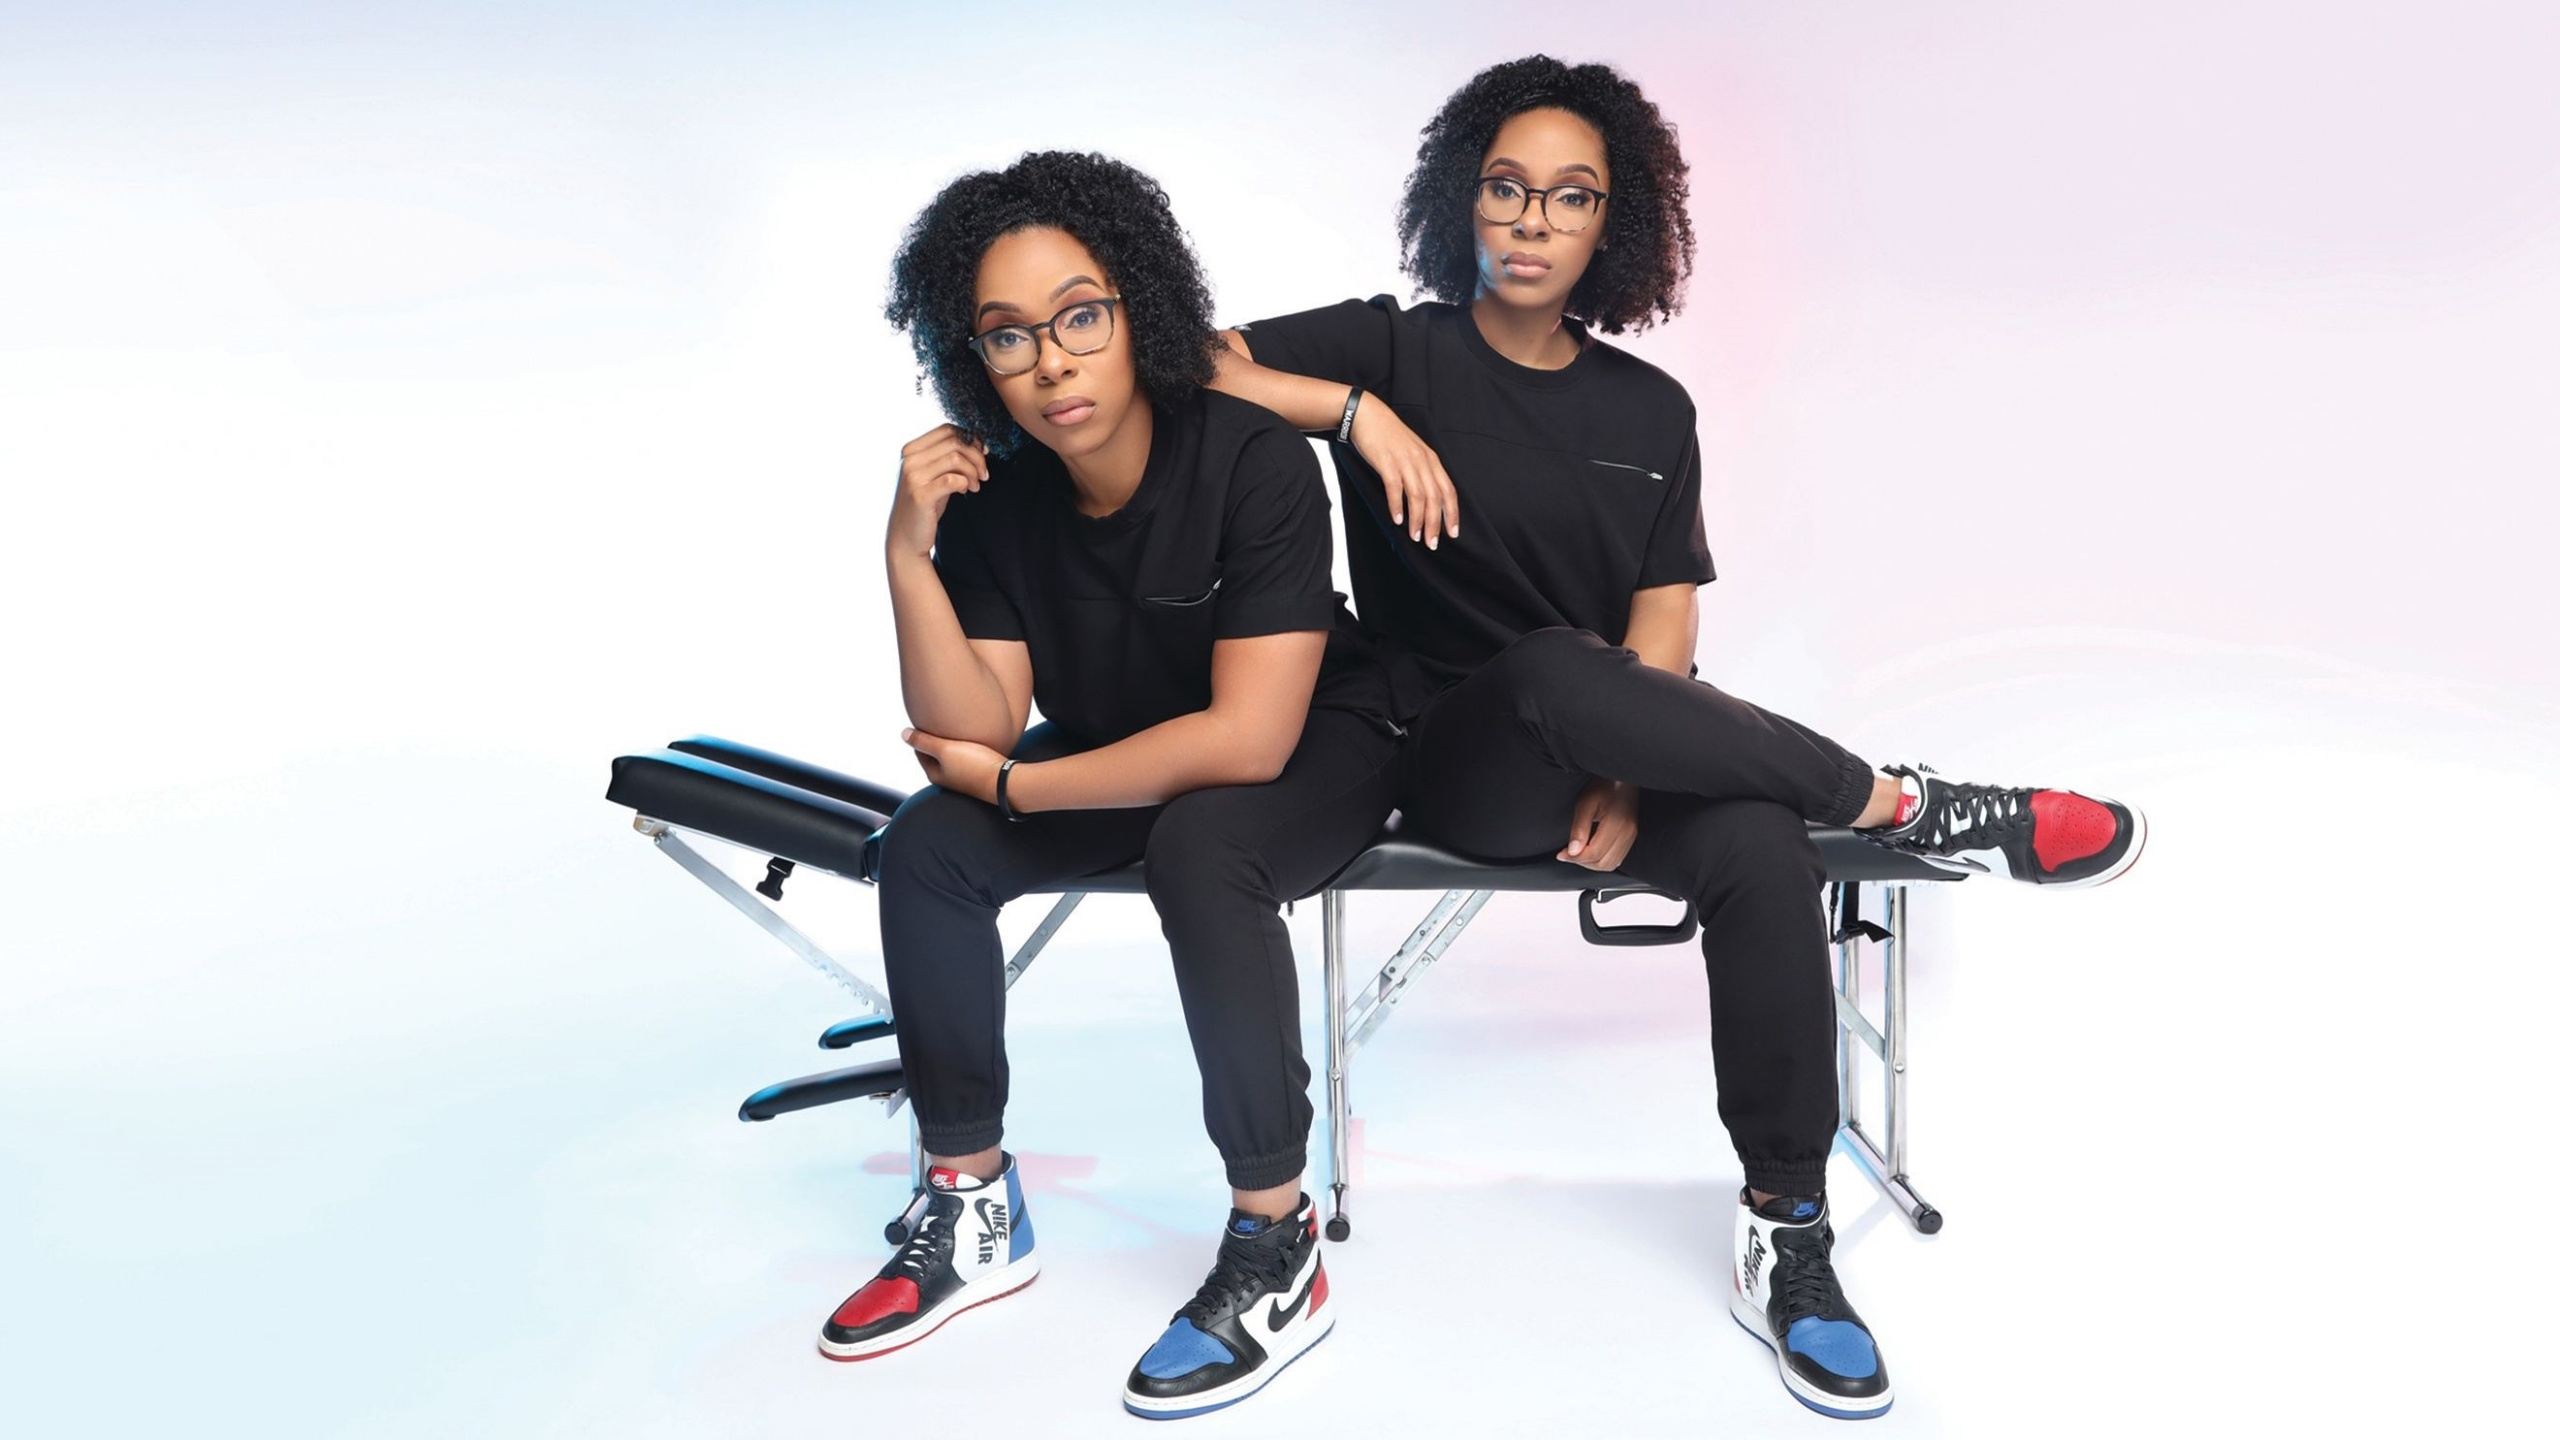 The Harris twins are ready to 'combine our love of food, chiropractic, exercise and business' while educating on the importance of diversity